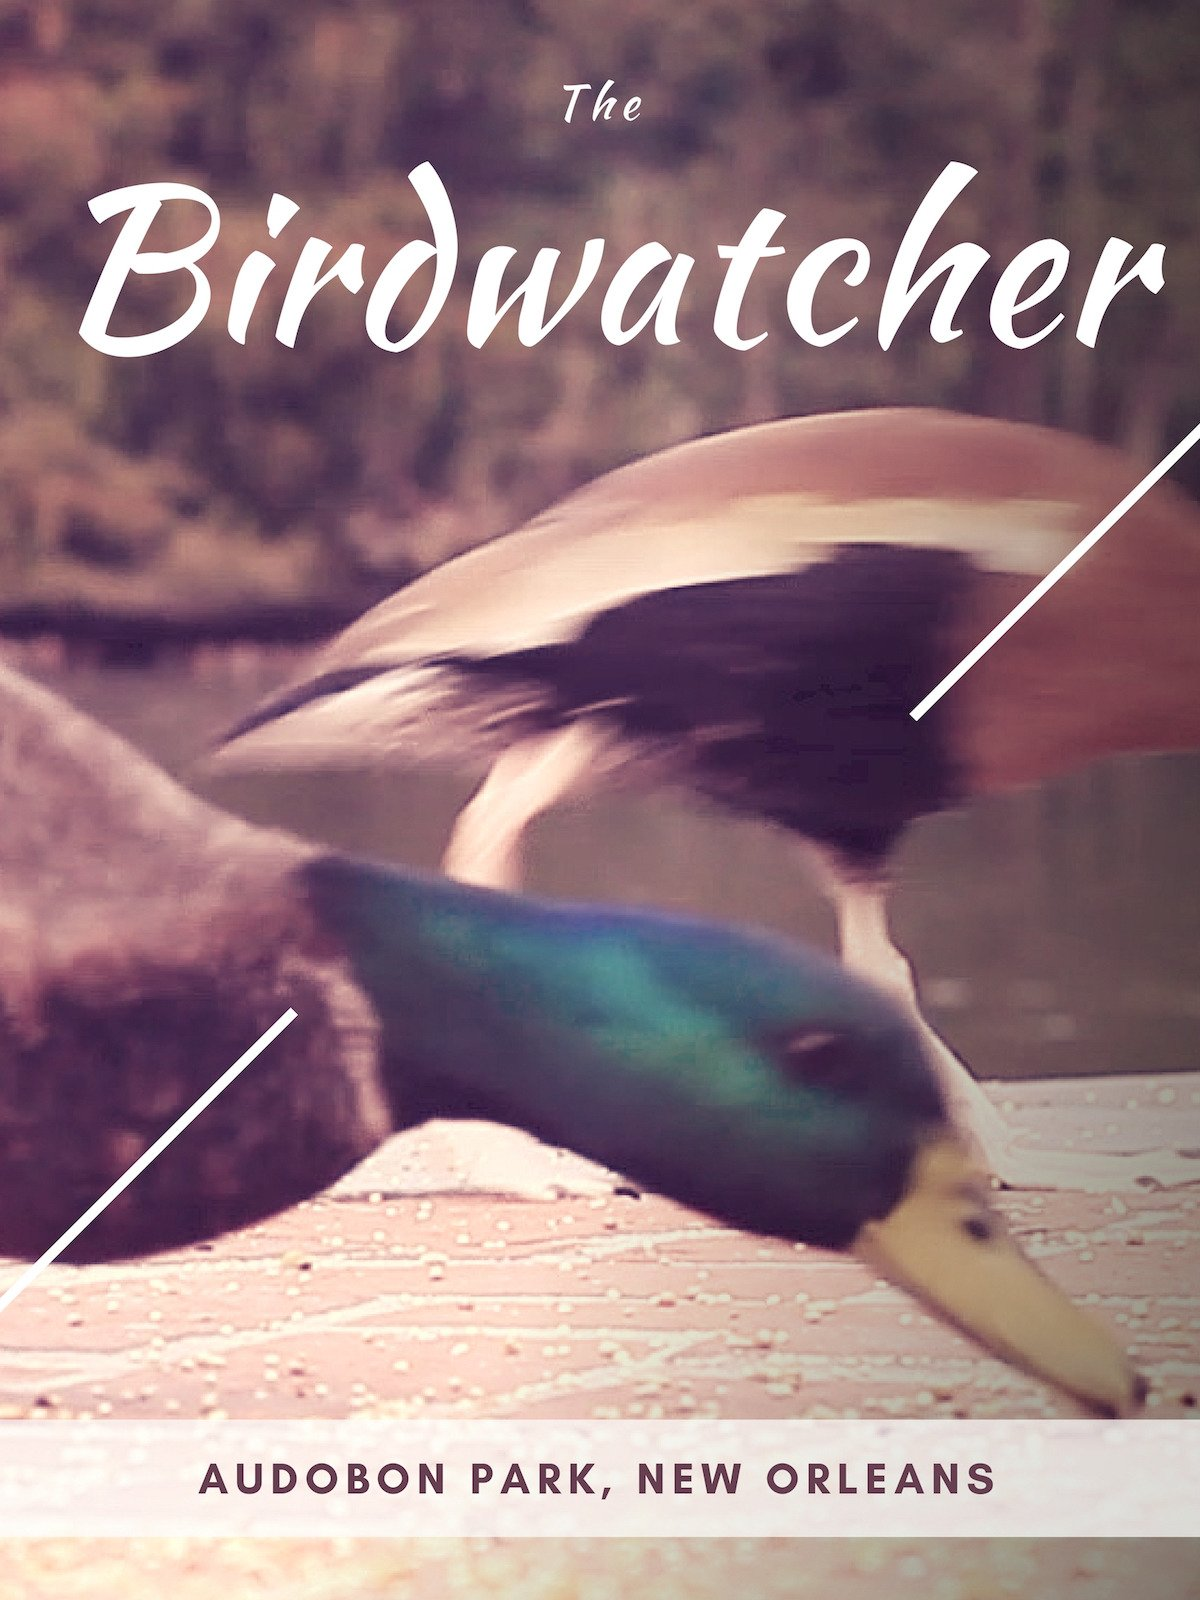 The Bird Watcher: Audubon Park (The Ultimate Birds Video For Cats Collection)